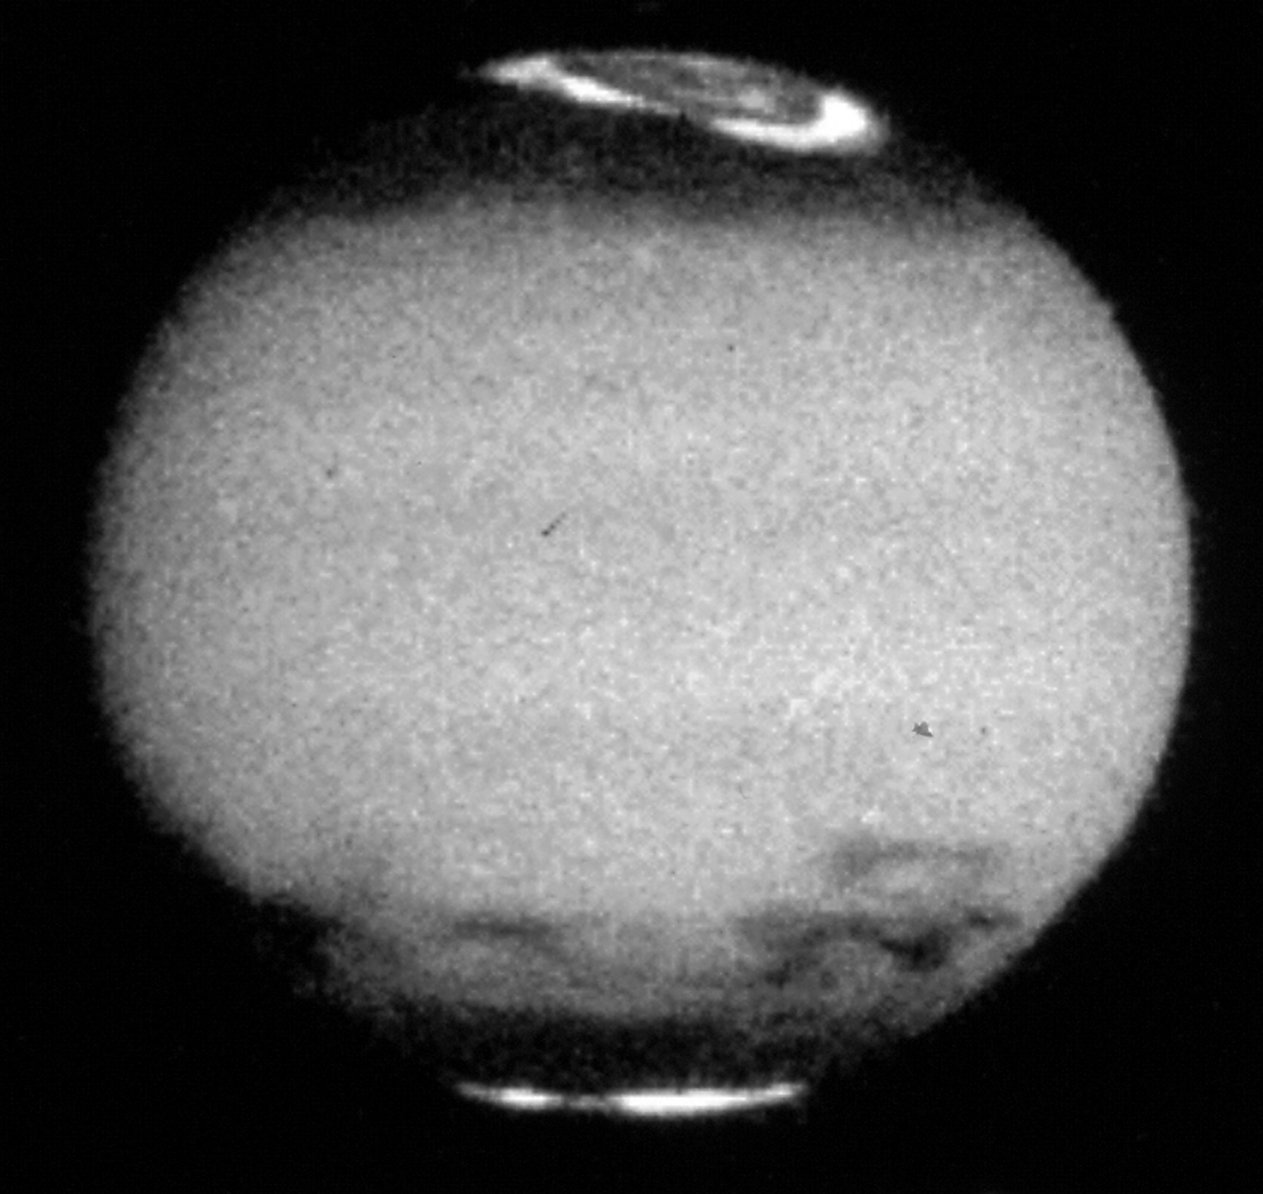 Jupiter's Upper Atmospheric Winds Revealed in Ultraviolet Images by Hubble Telescope